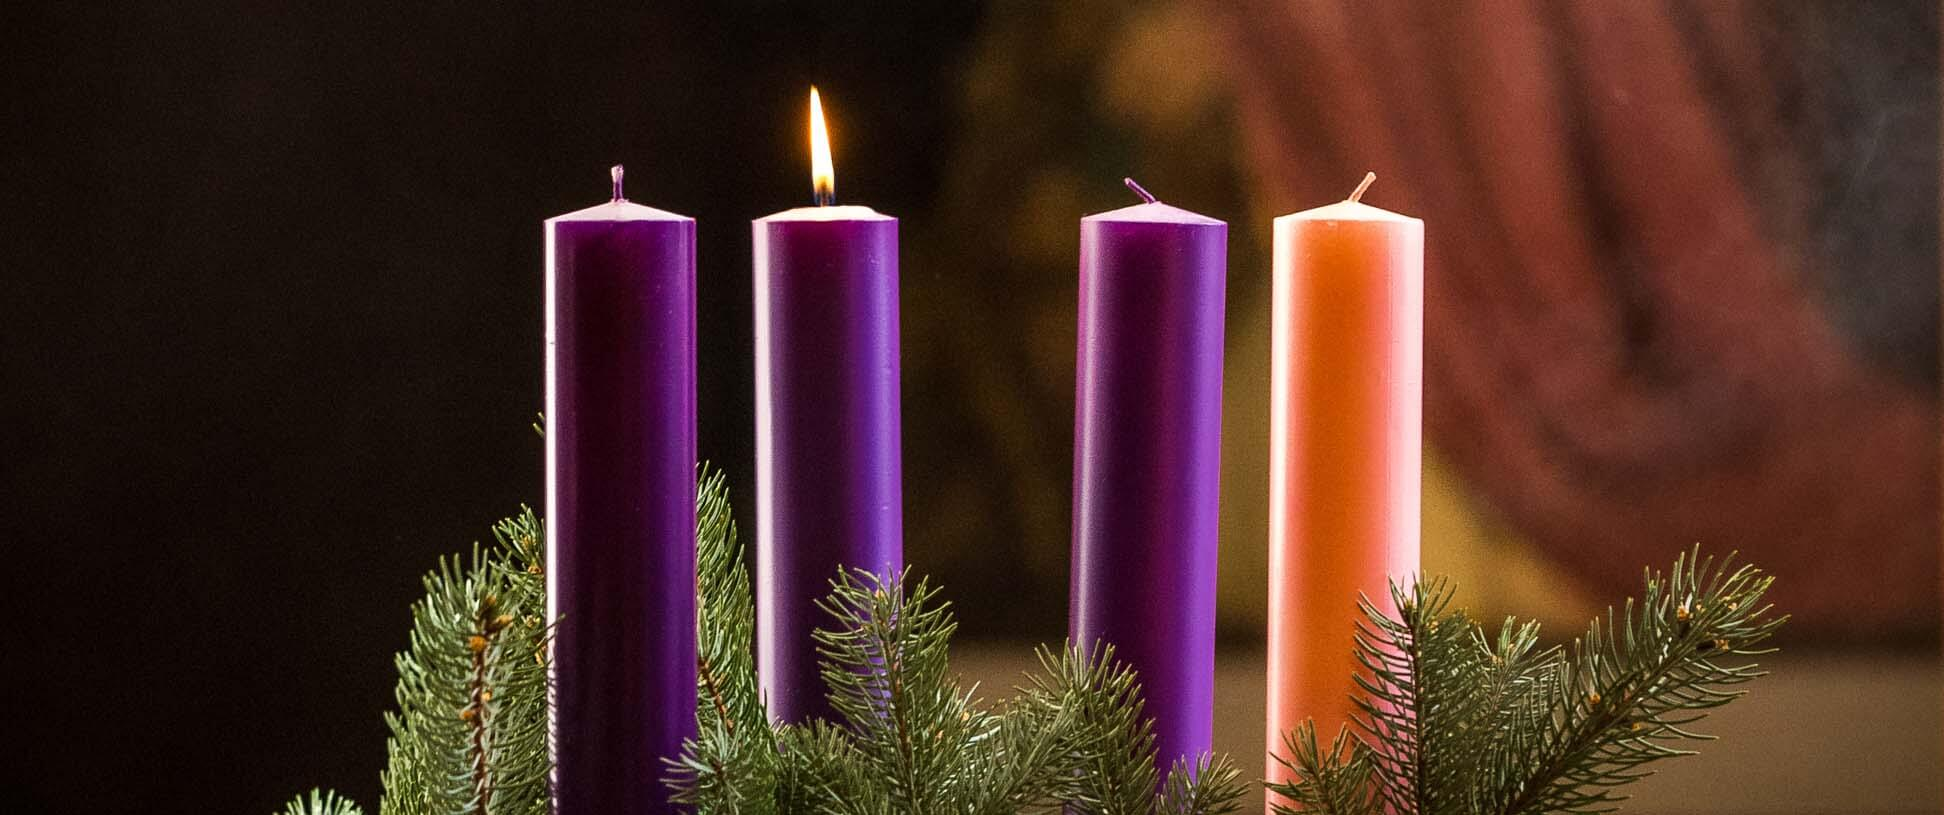 Advent begins with Mercy